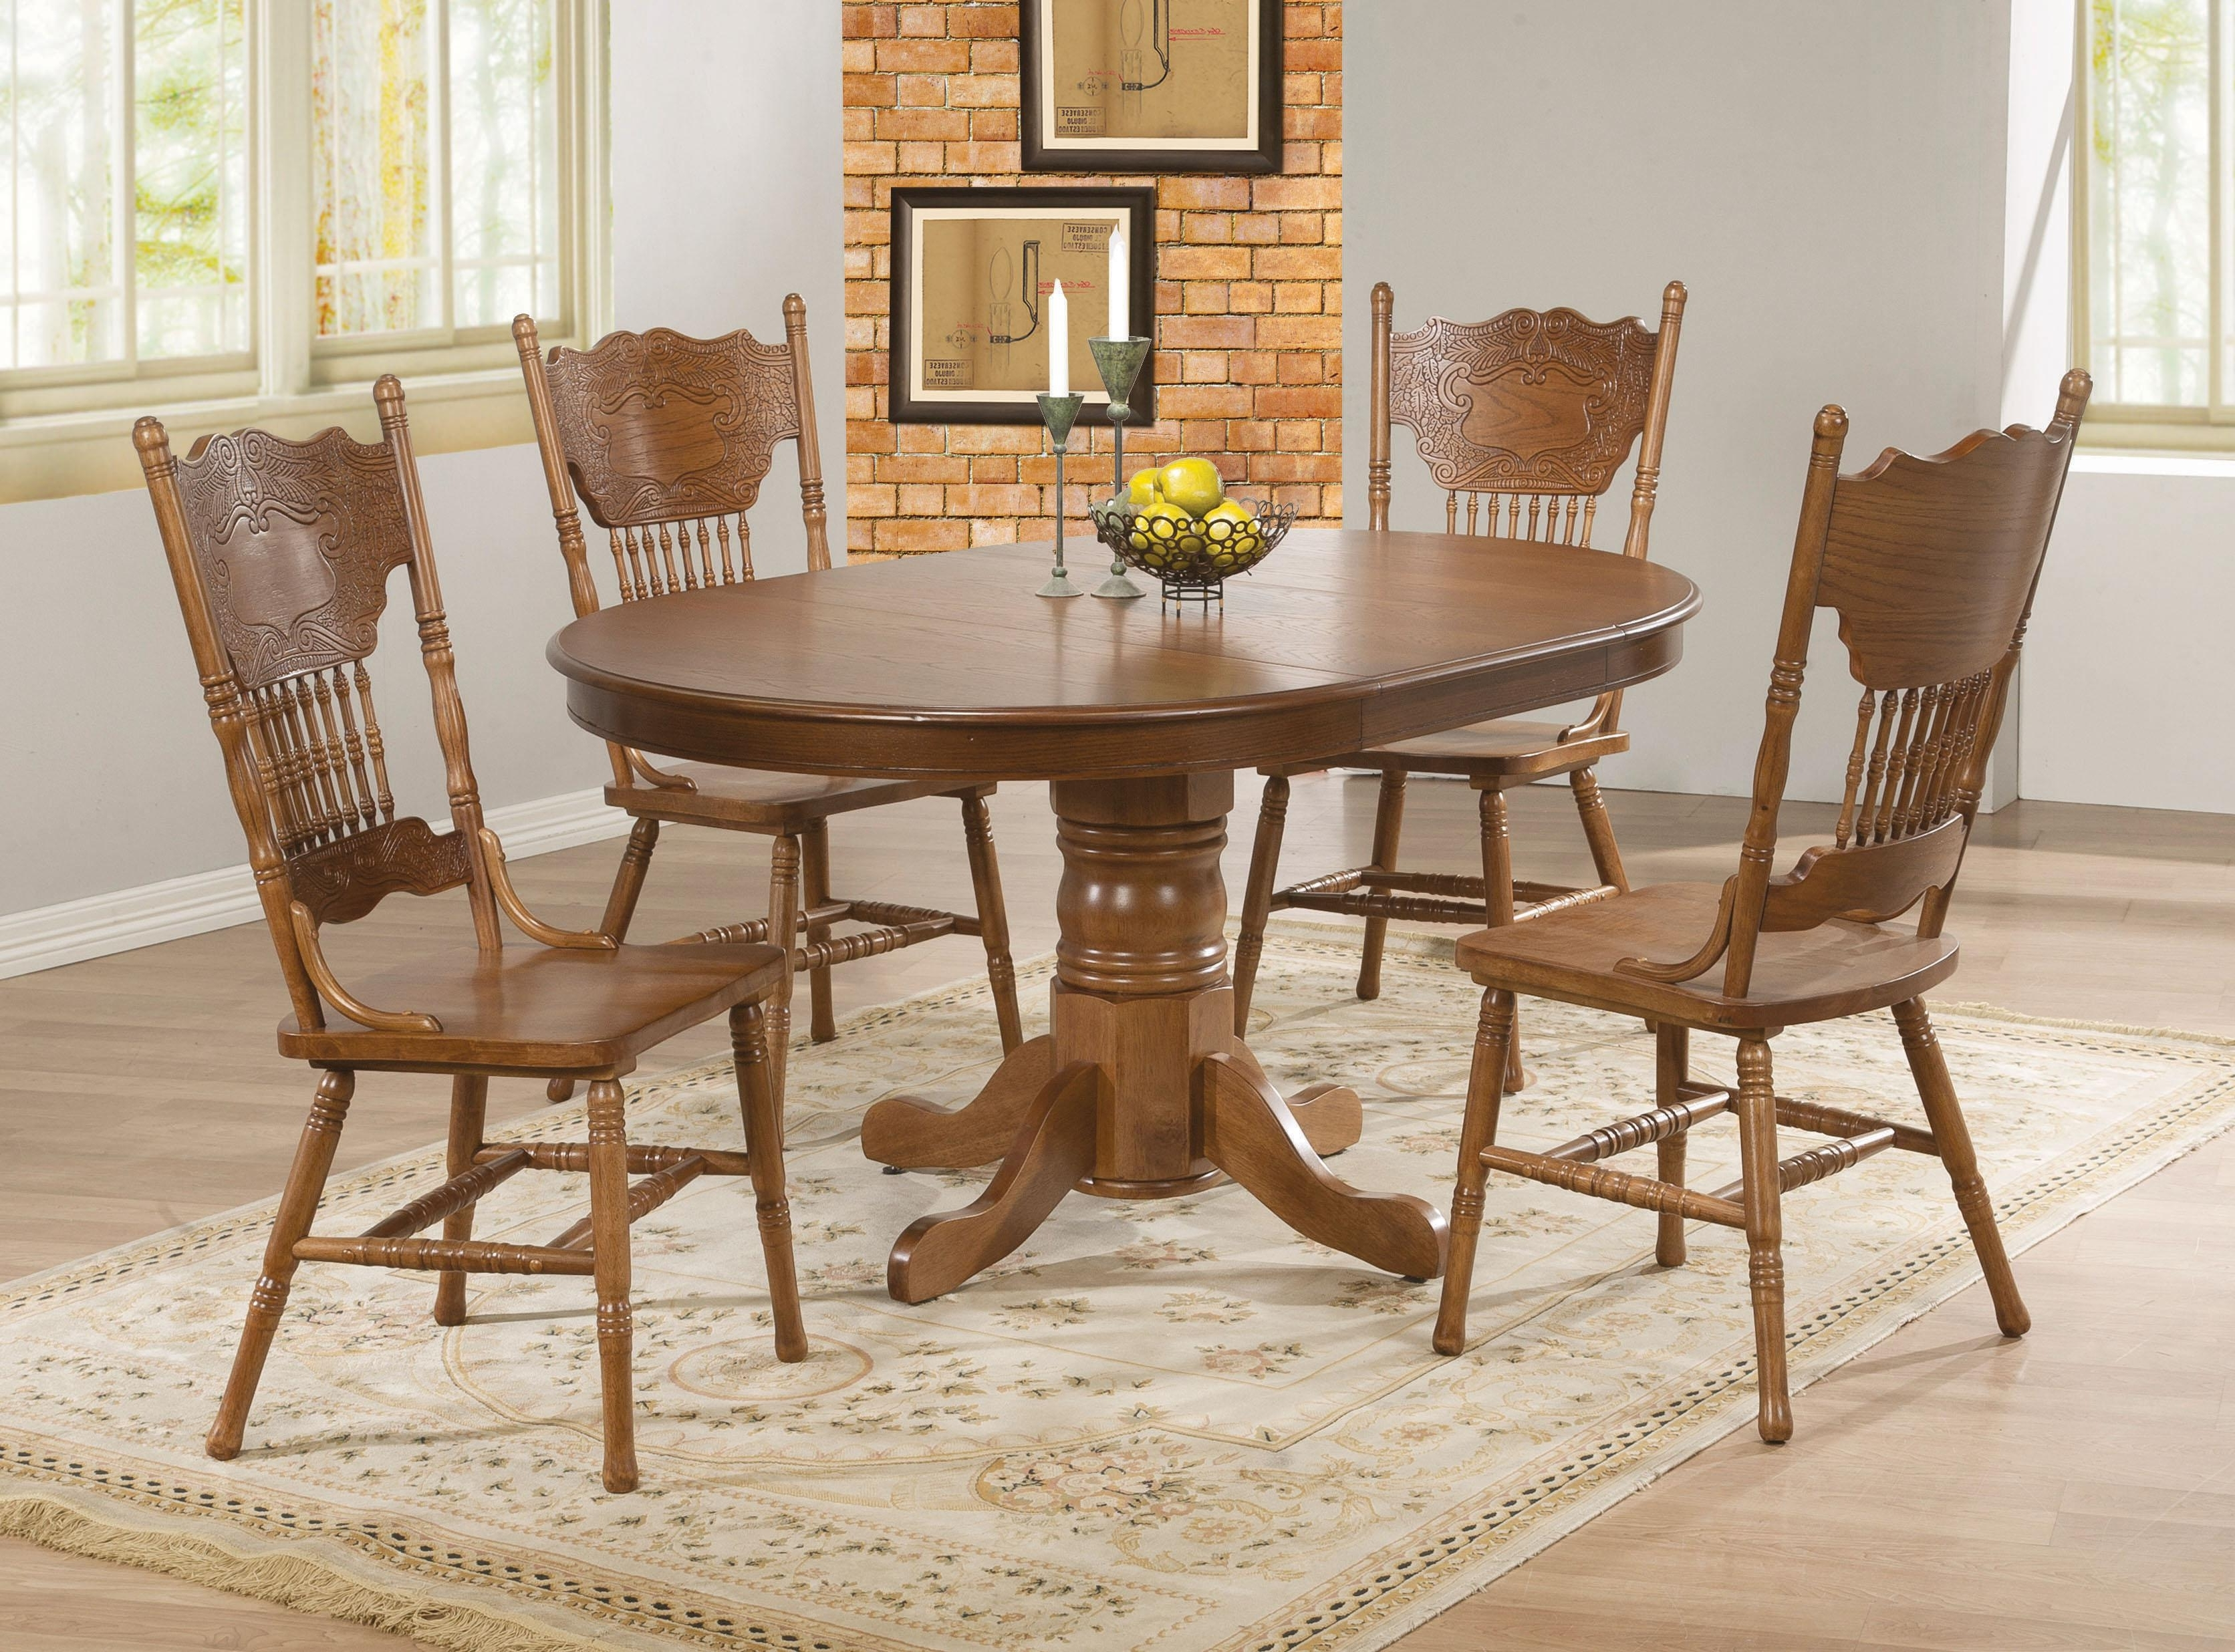 Preferred Round Dining Table Htm Oak Oval Dining Table And Chairs As Glass Within Glass And Oak Dining Tables And Chairs (Gallery 16 of 25)